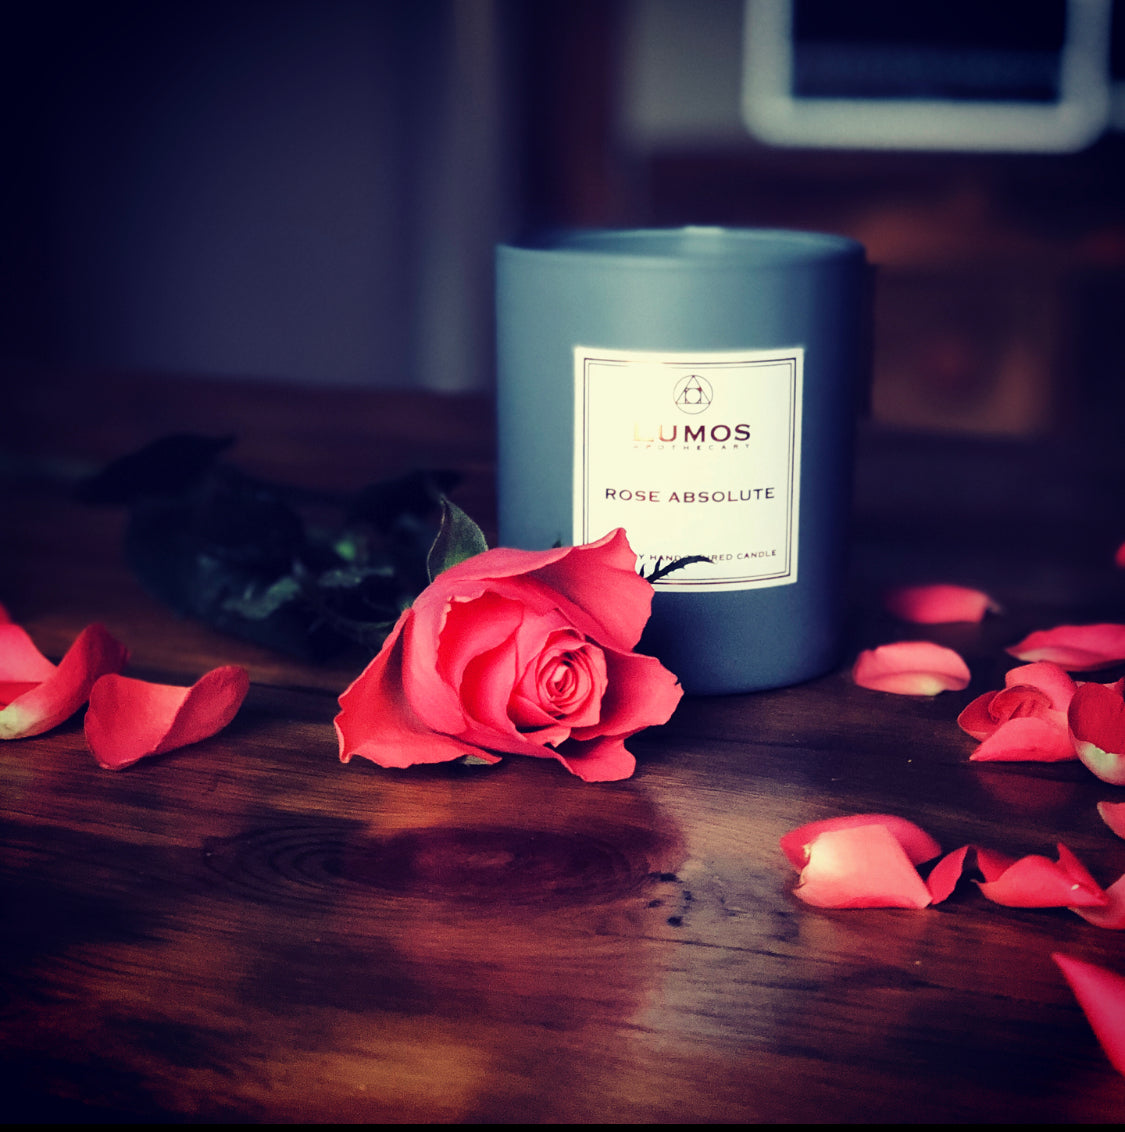 Rose Absolute Scented Natural Soy Wax Candle In Grey Jar Surrounded by red rose petals on a wooden table